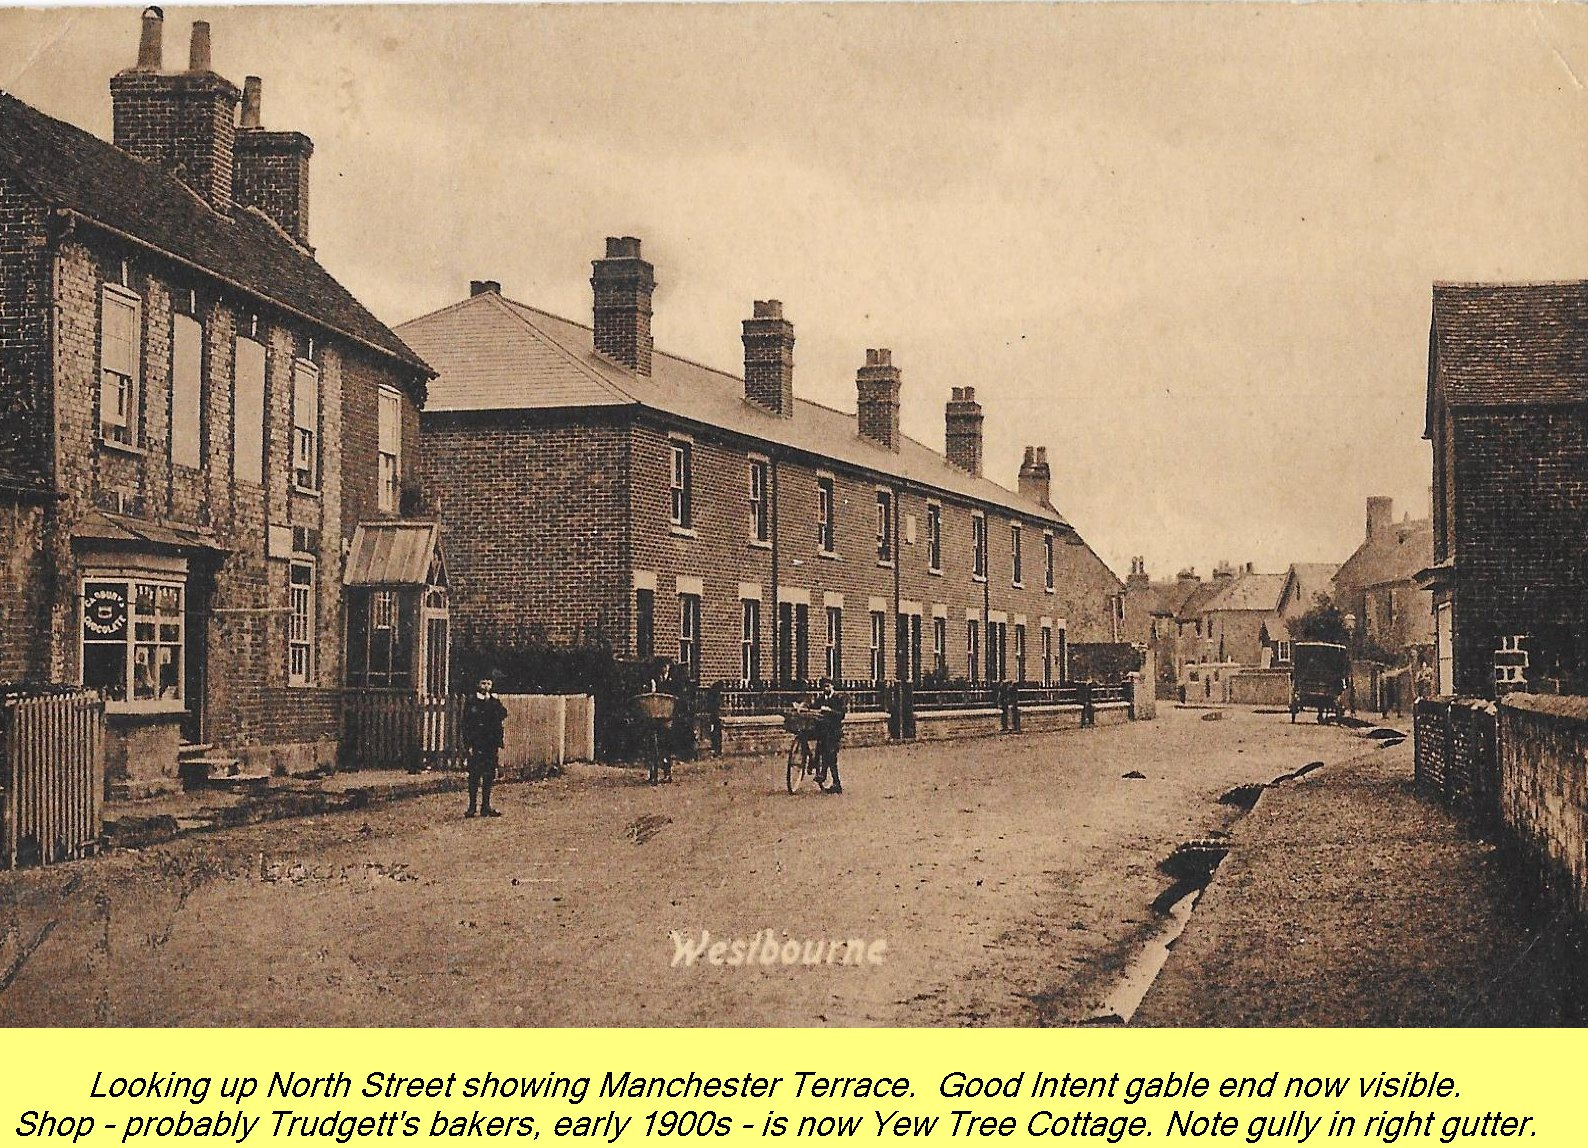 WESTBOURNE HISTORY PHOTO, NORTH STREET, MANCHESTER, TERRACE, GOOD INTENT, TRUDGETT, YEW TREE